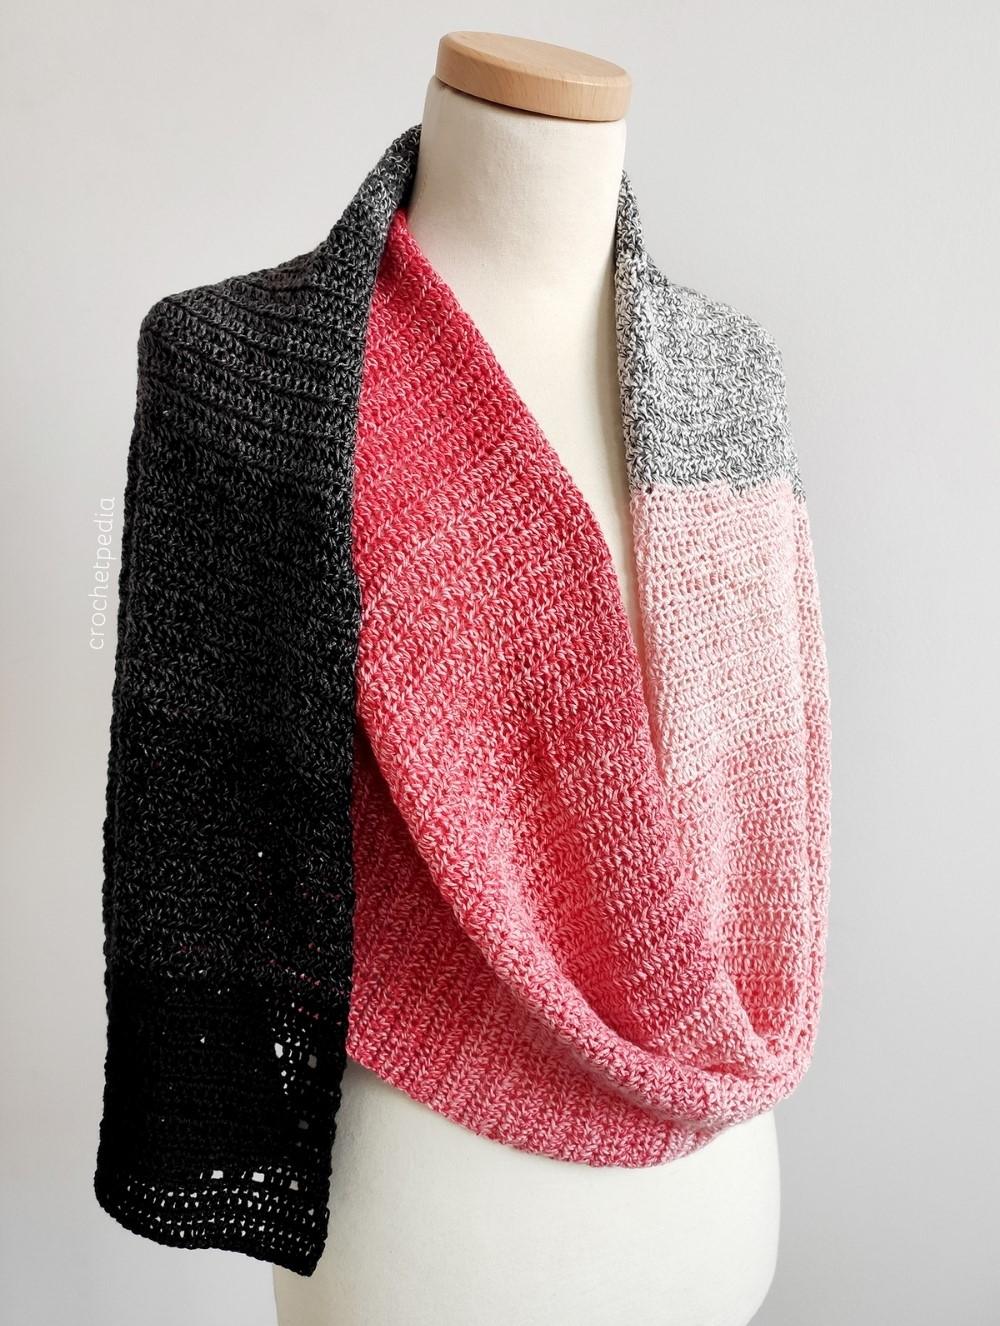 crochet scarf in red and black, draped